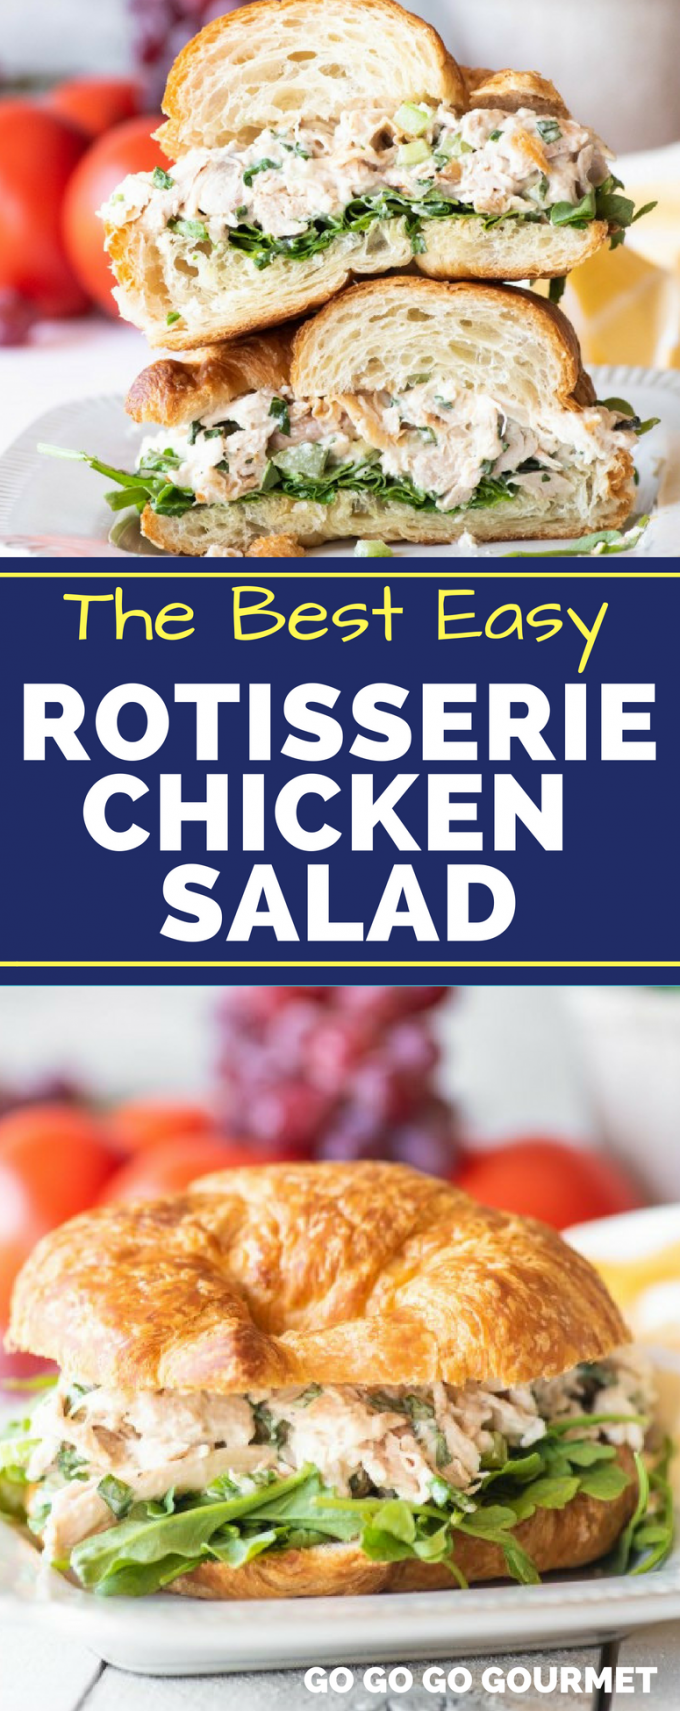 This is the best easy Rotisserie Chicken Salad recipe out there! Made creamy with Greek yogurt, yet crunchy with grapes and celery, this classic and simple sandwich is a great healthy lunch option! #rotisseriechickensalad #classicchickensalad #easychickensalad #gogogogourmet